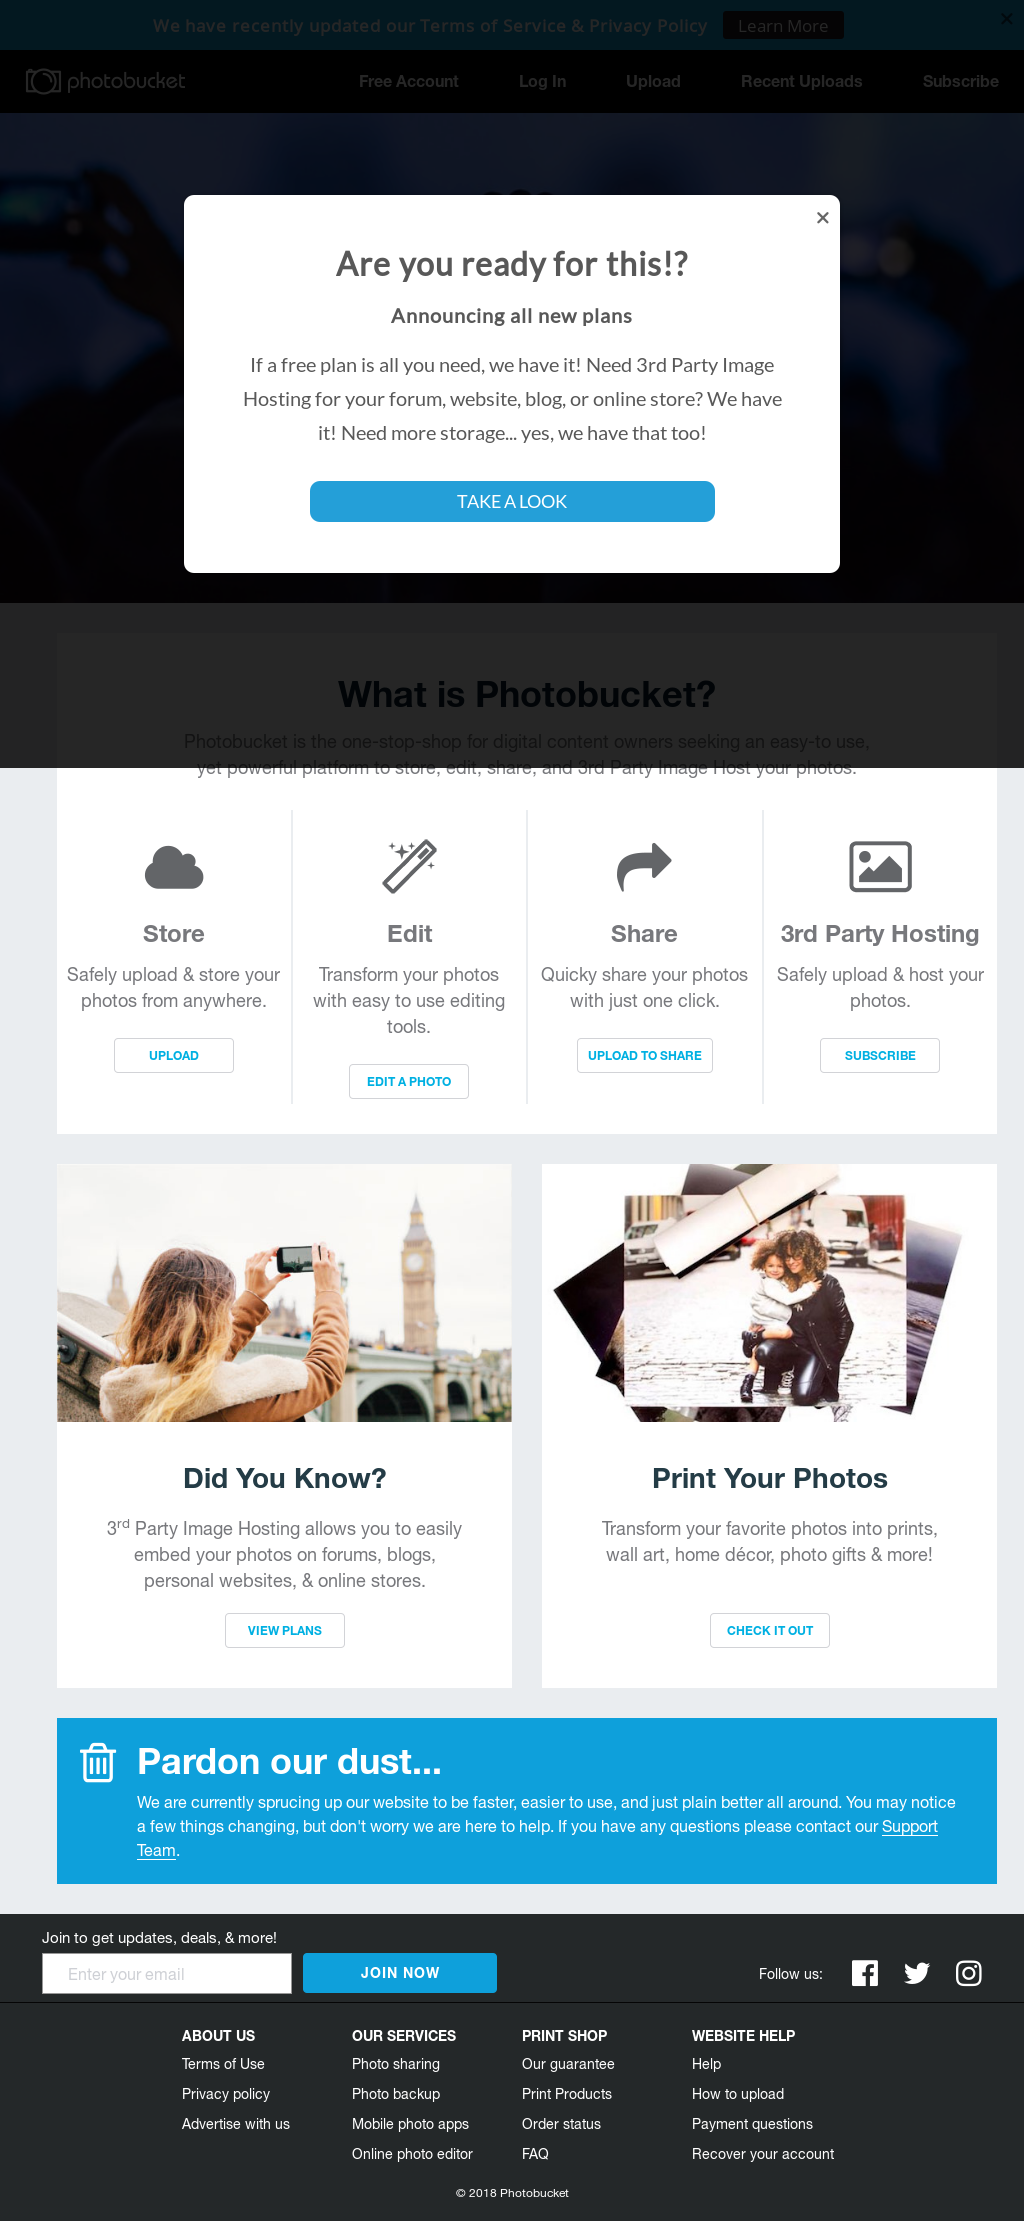 Photobucket Competitors, Revenue and Employees - Owler Company Profile